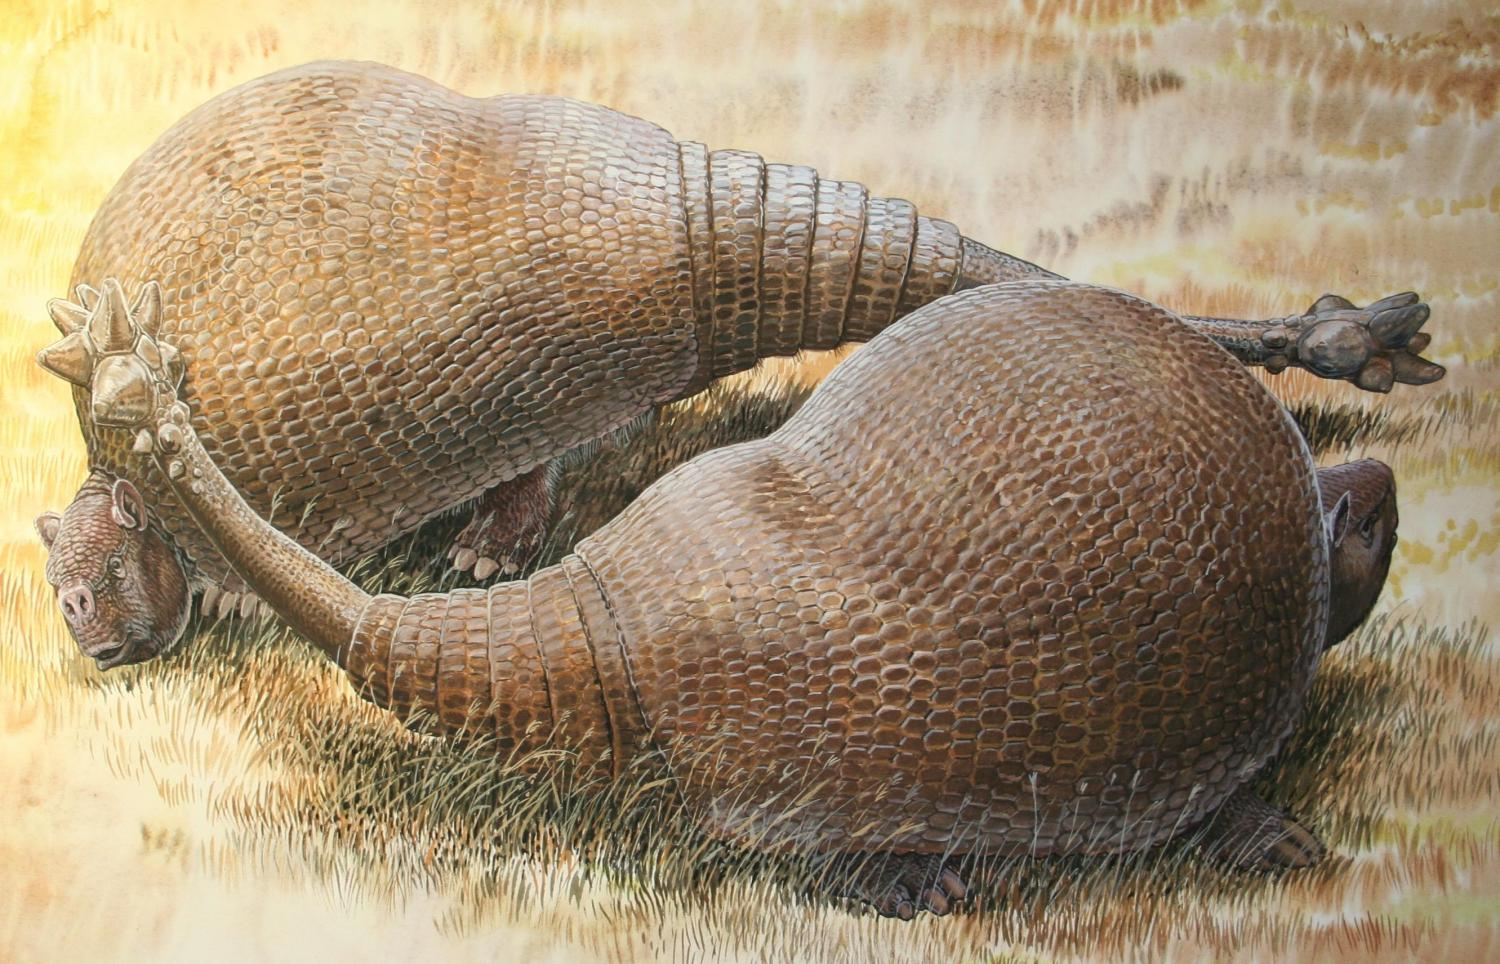 Extinct glyptodonts really were gigantic armadillos